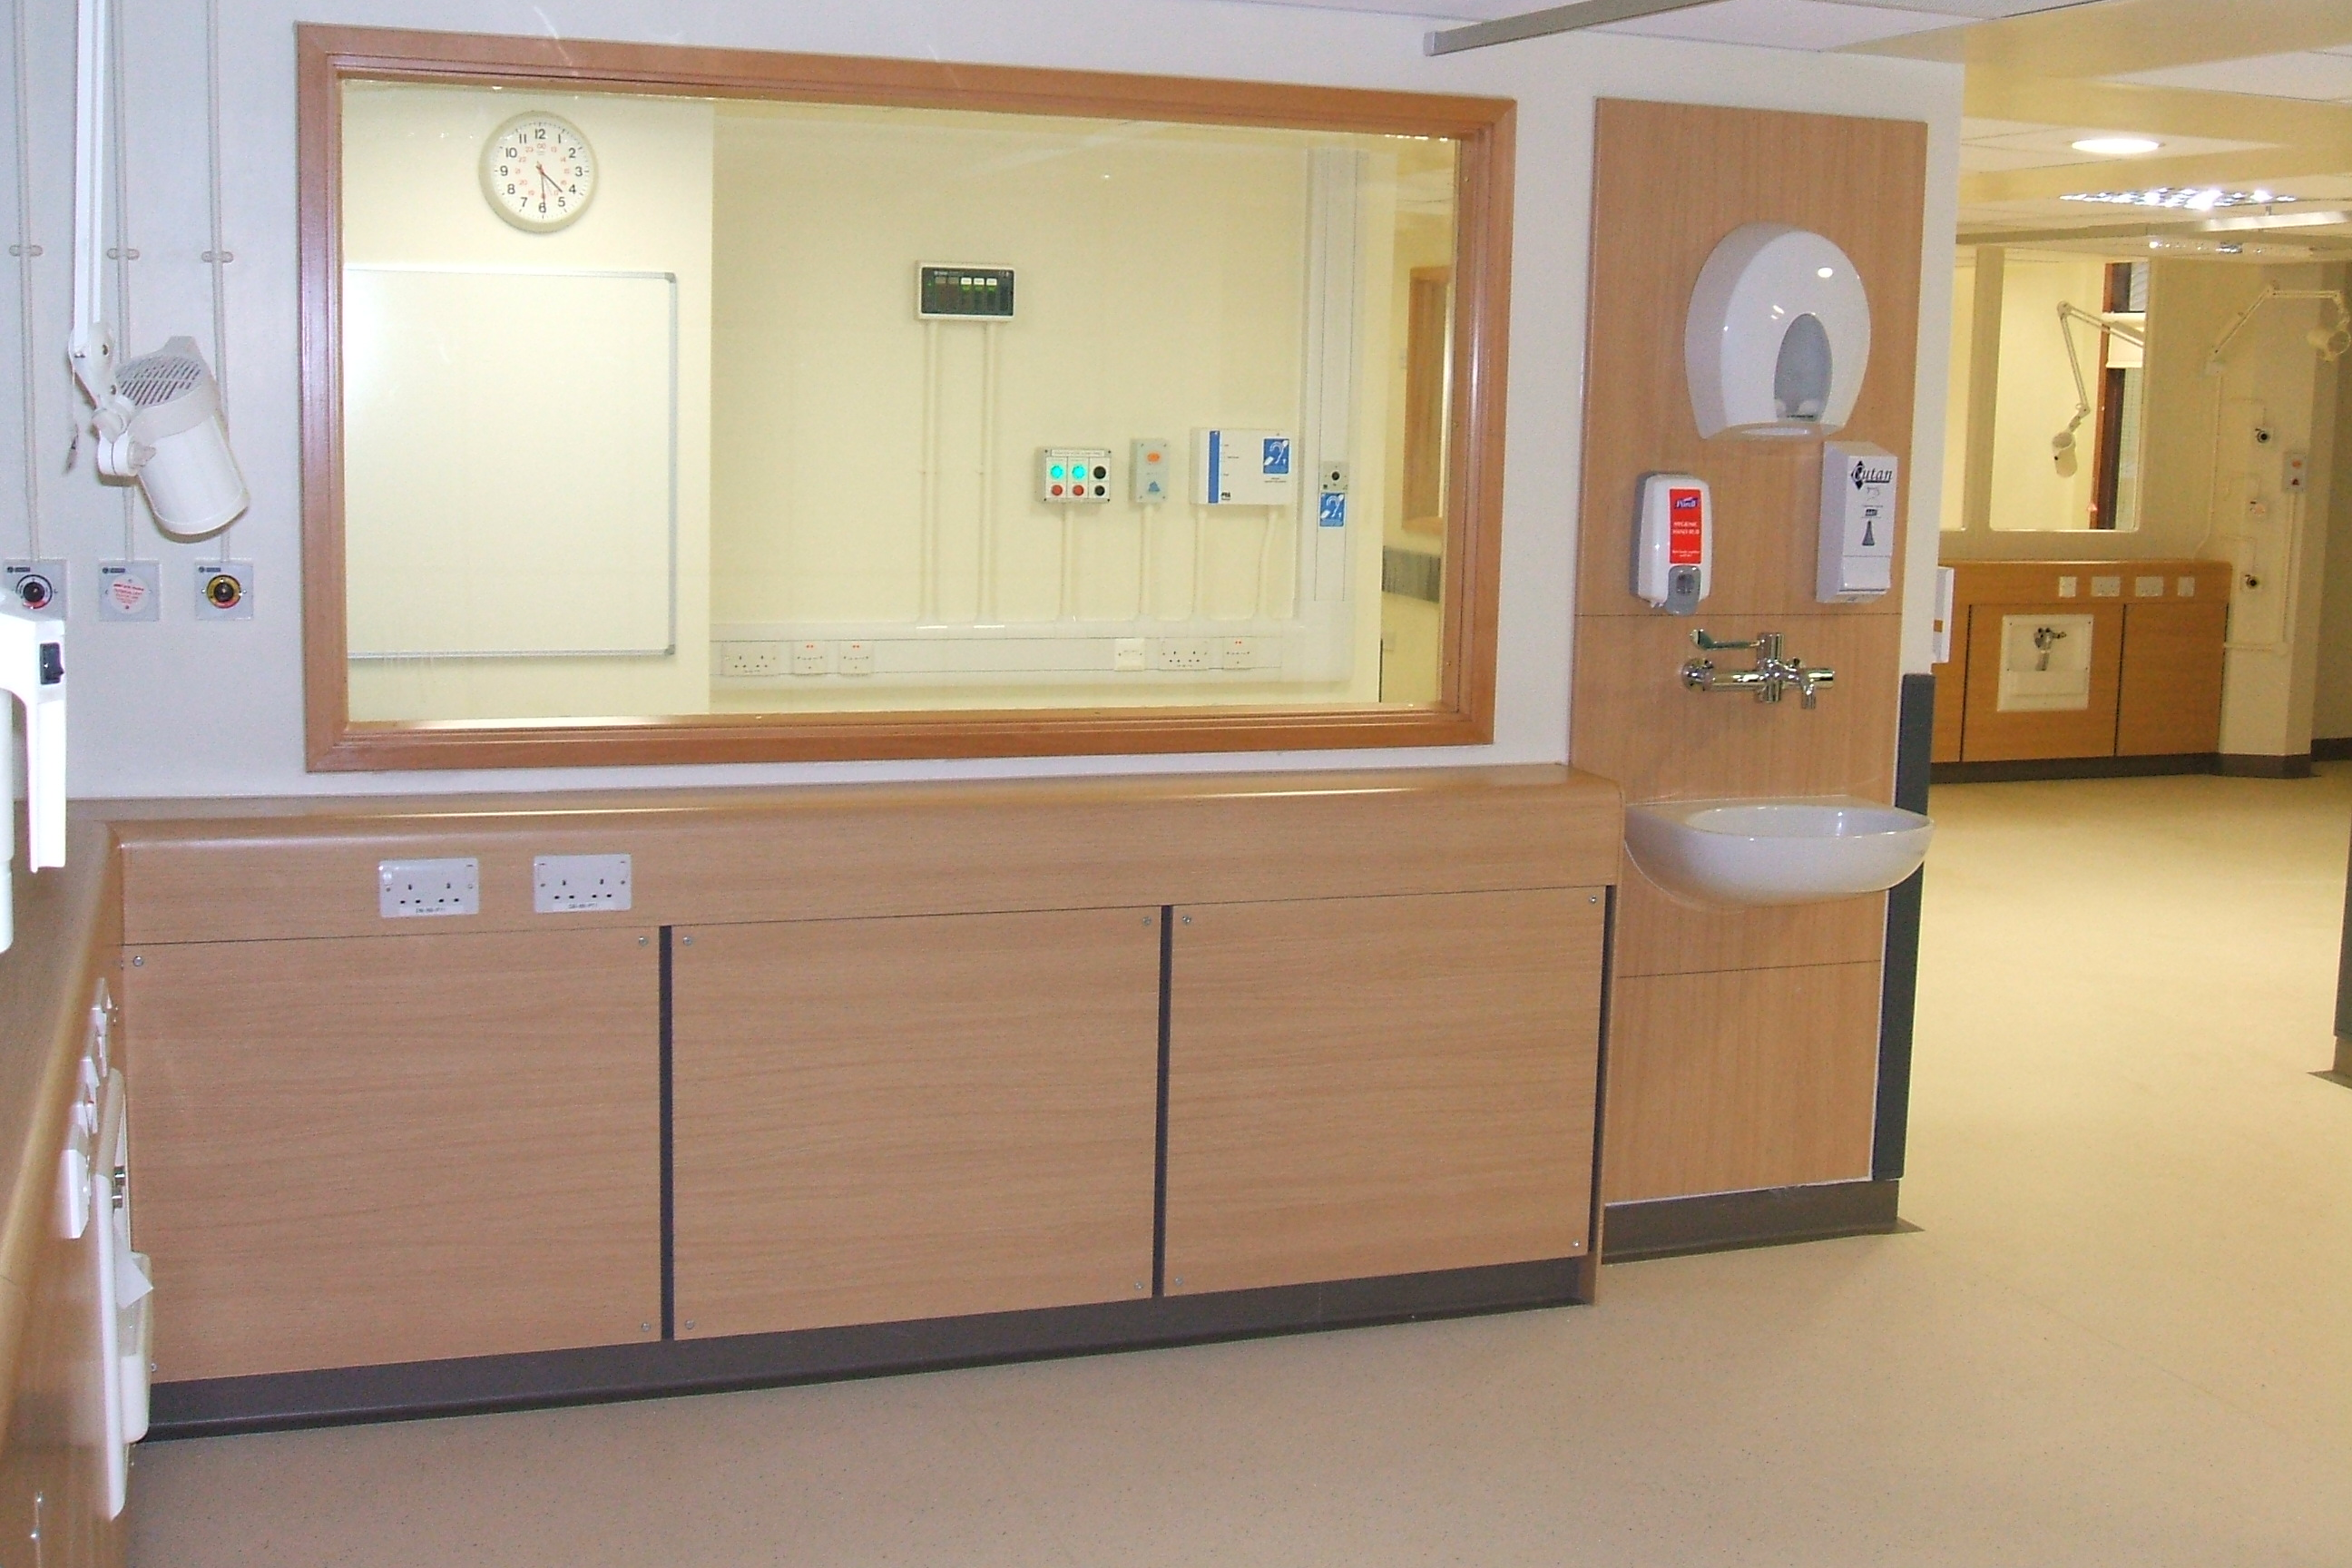 health care environments Gradually, evidence is accumulating that links work environments to behavior, attitudes, and motivations among clinicians these behaviors and orientations can, in turn, affect quality.